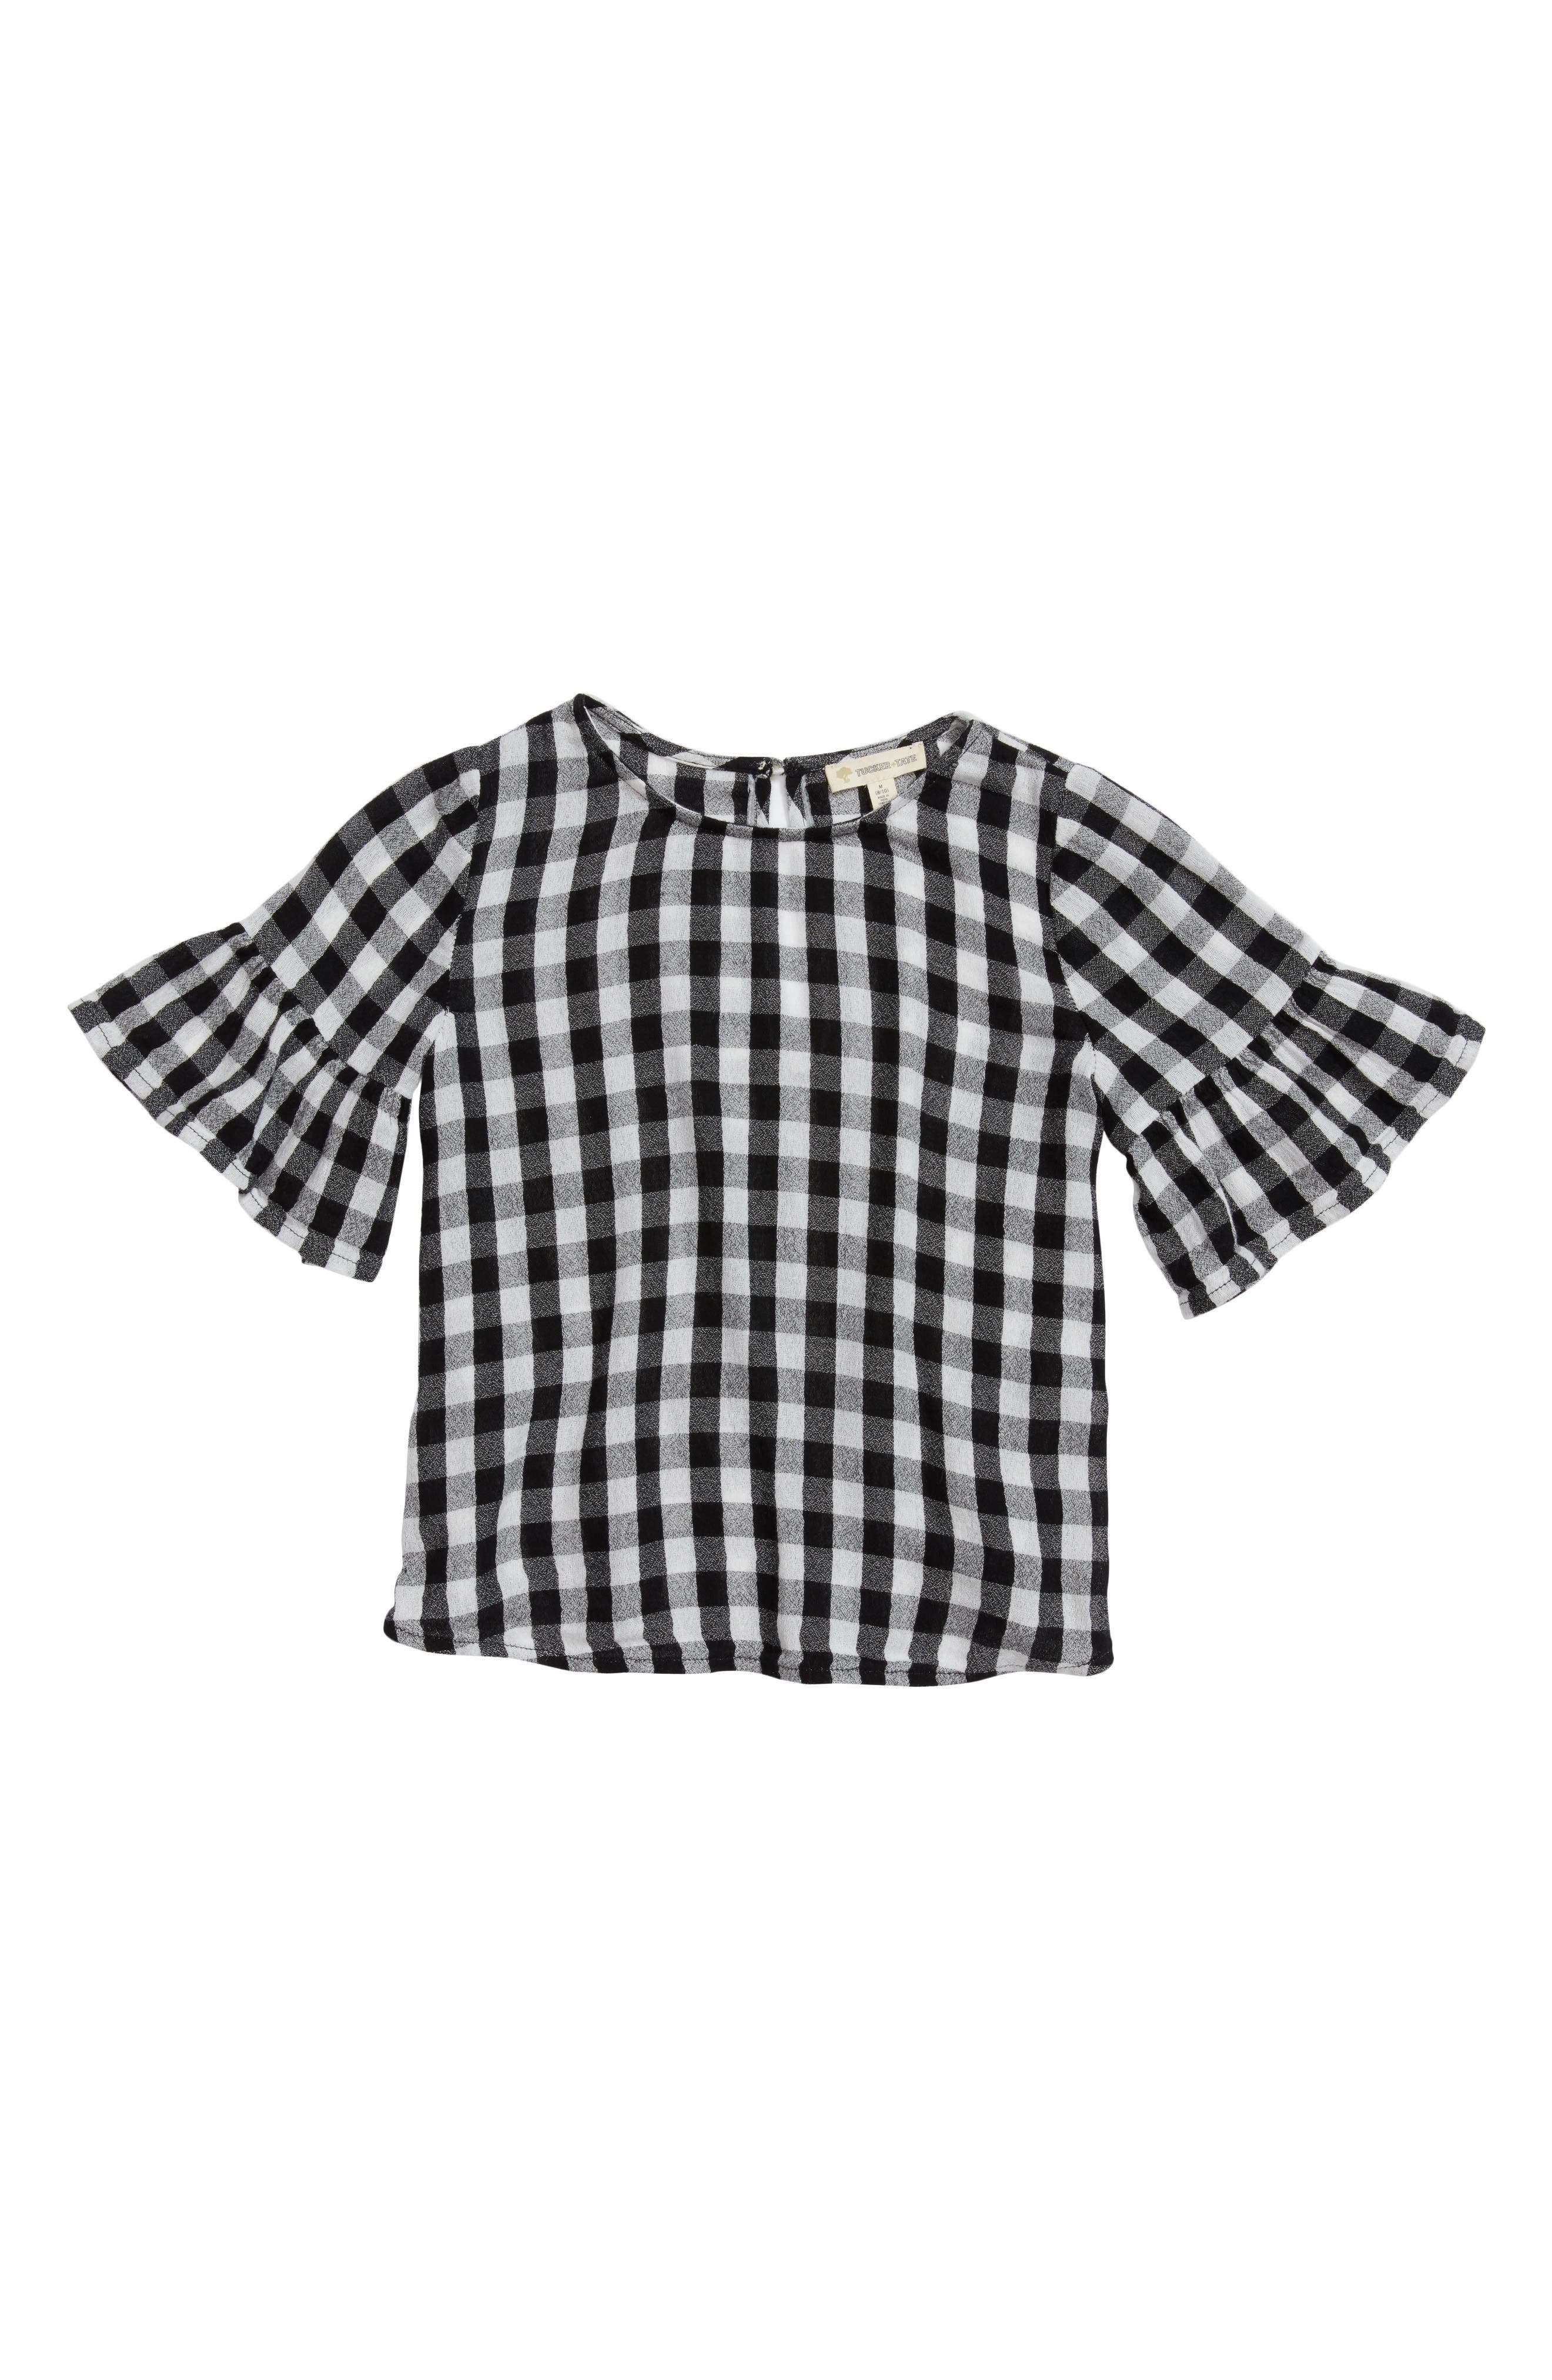 Bell Sleeve Top,                         Main,                         color, Black- White Gingham